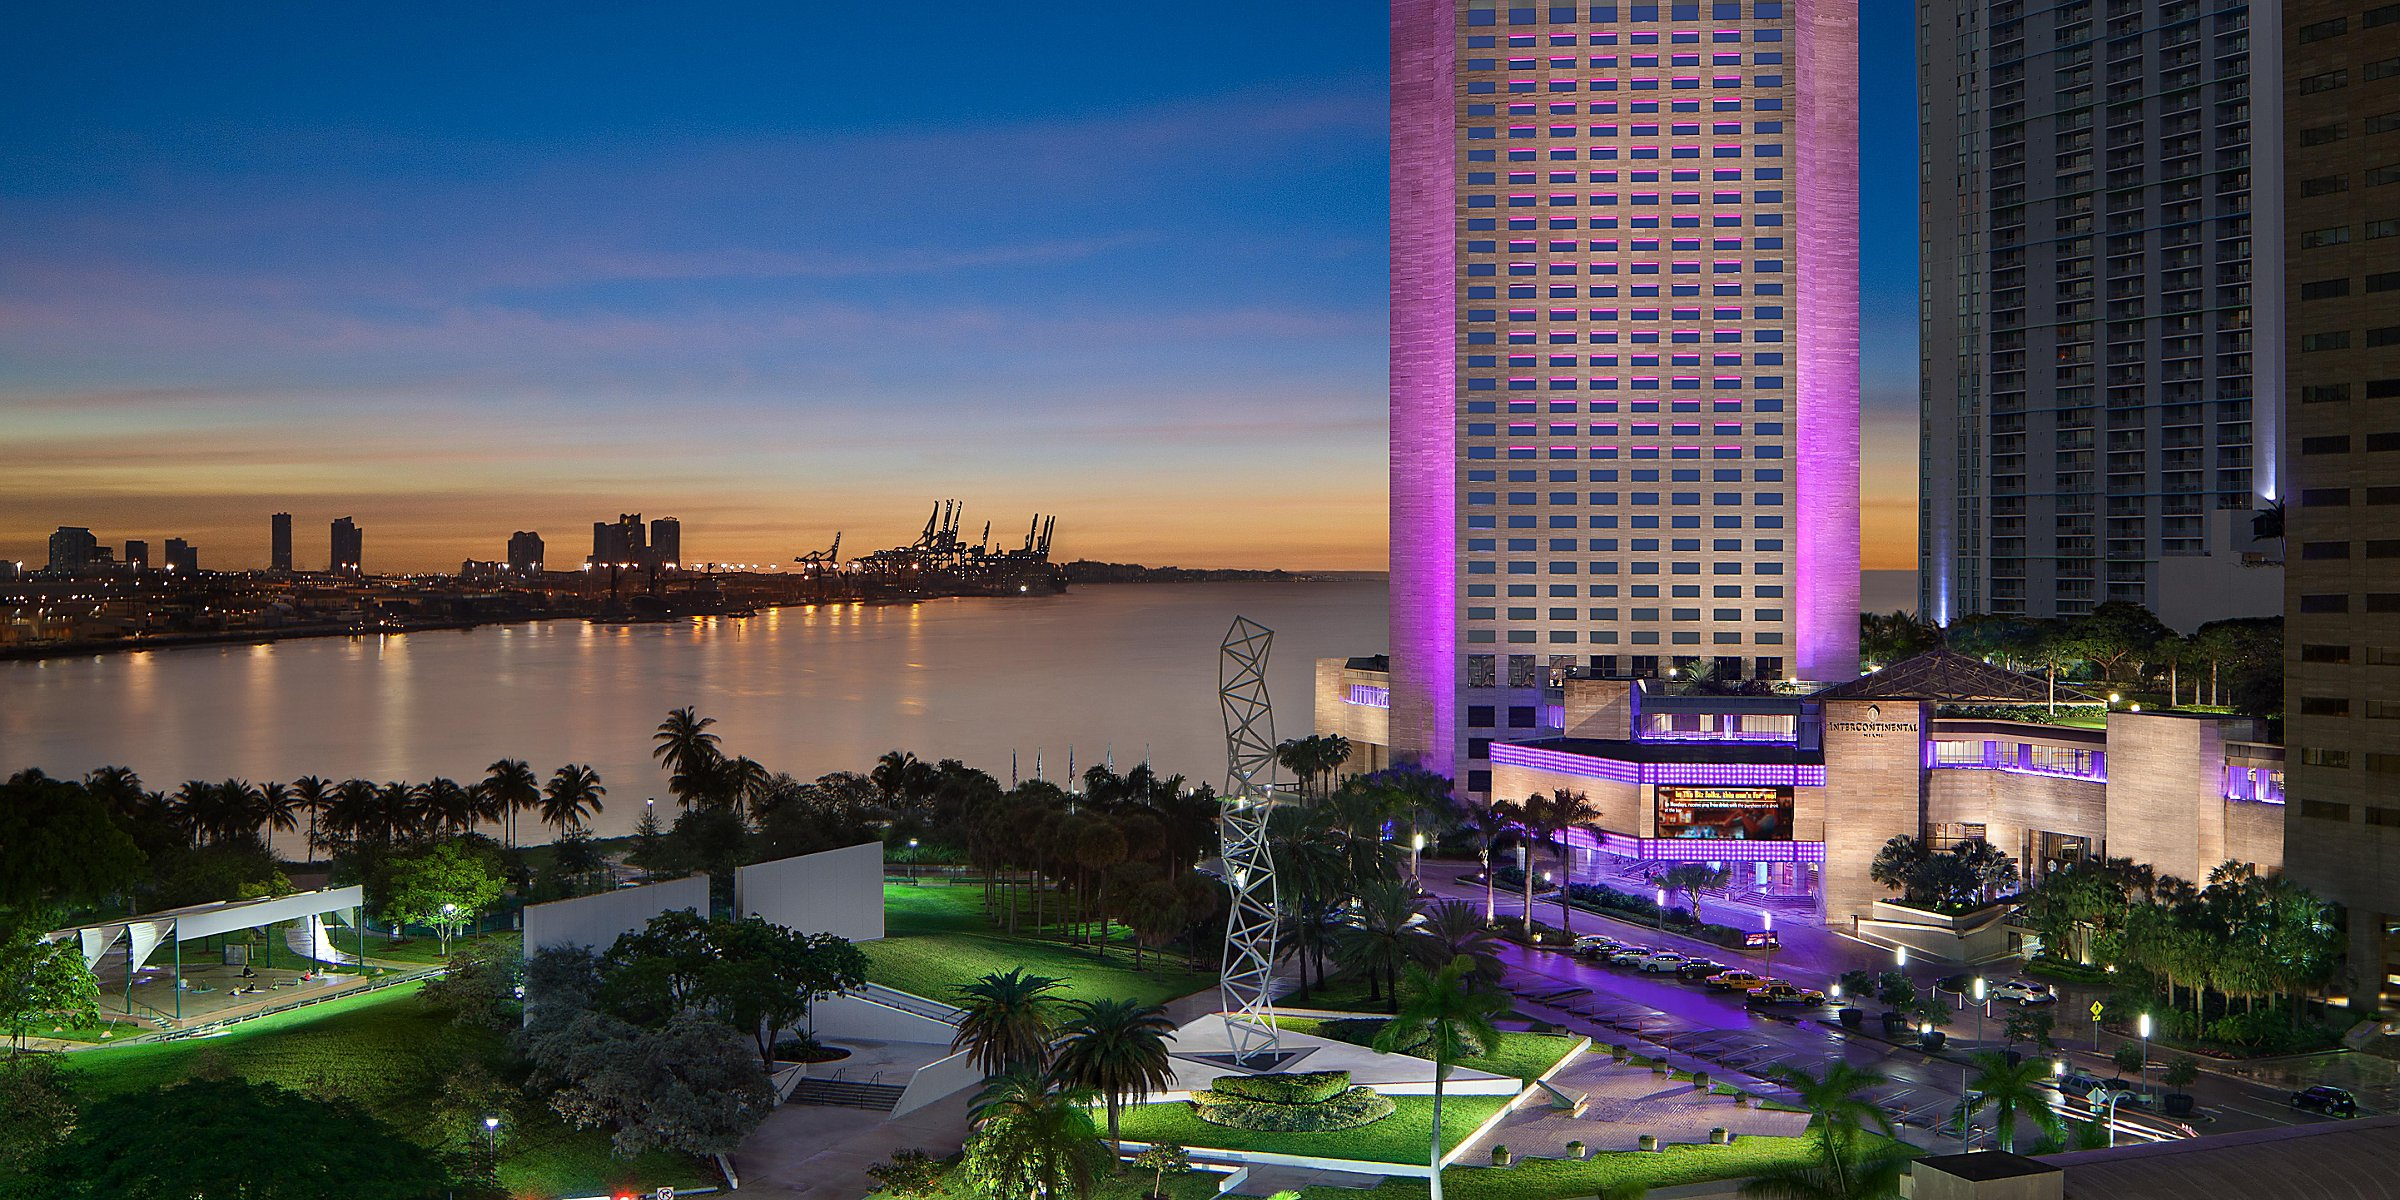 Hotels Miami Hotels Deals At Best Buy 2020